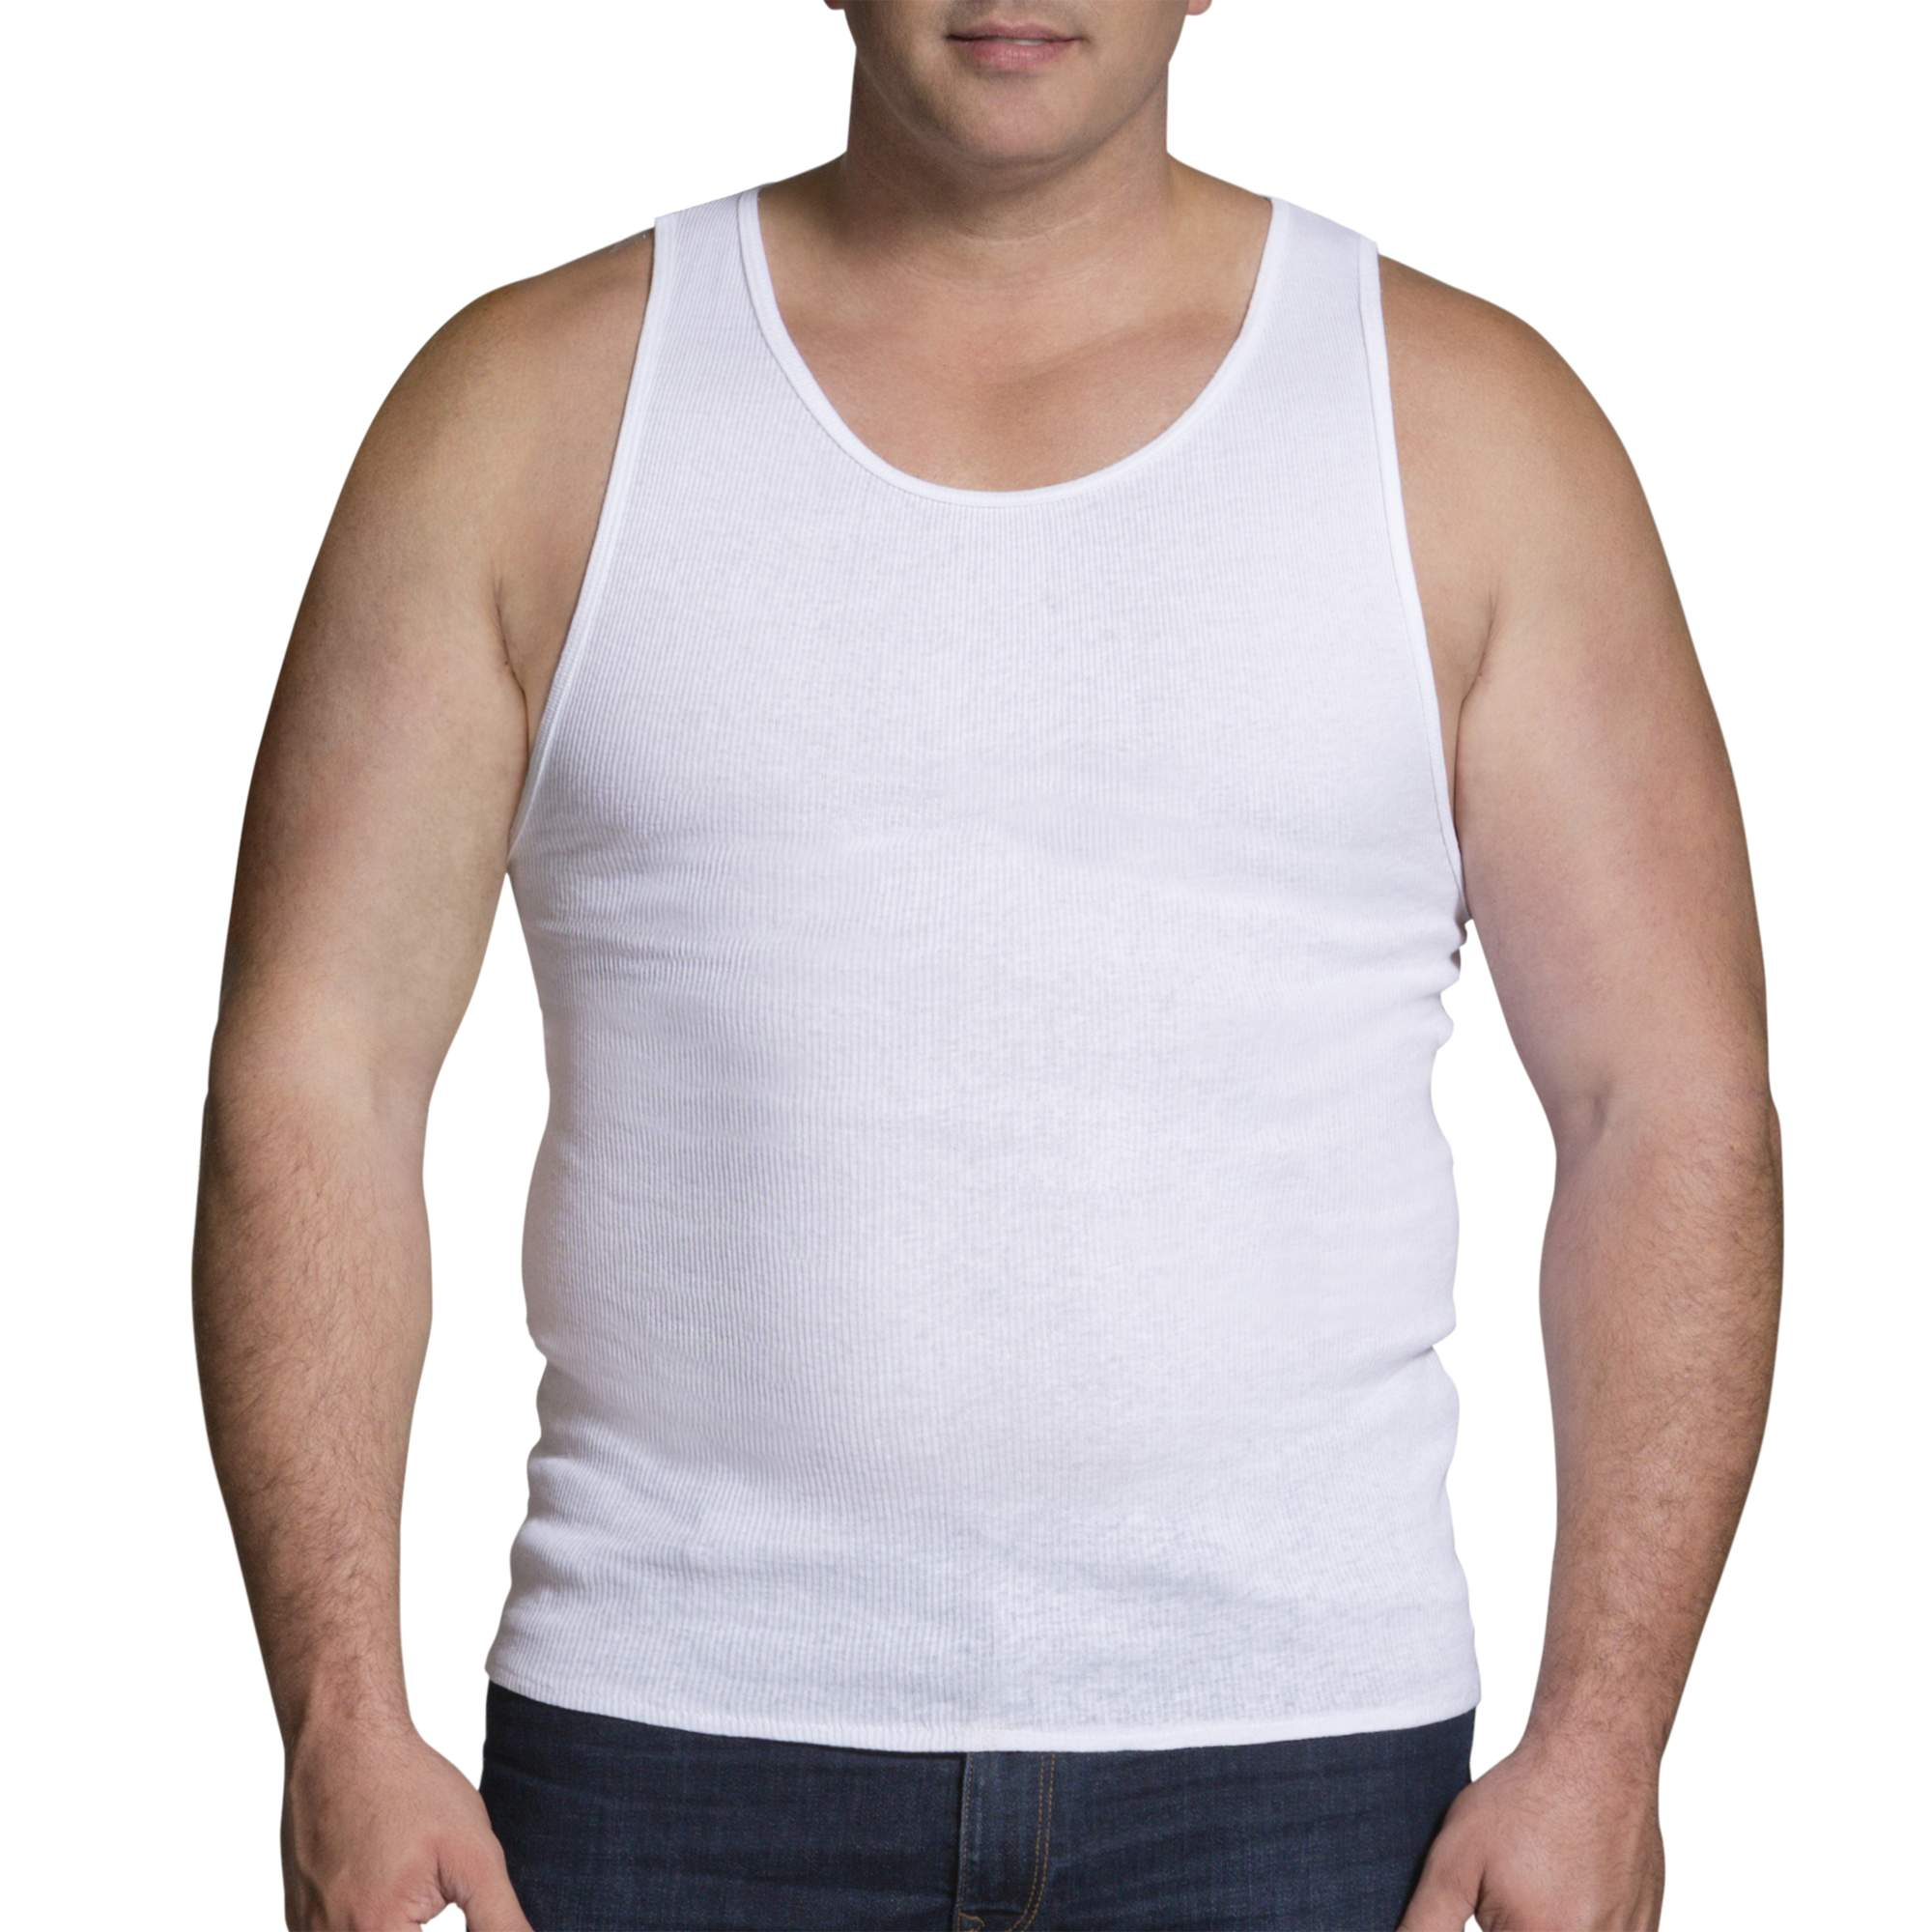 Fruit of the Loom Big Men's Collection White A-Shirts, 3-Pack